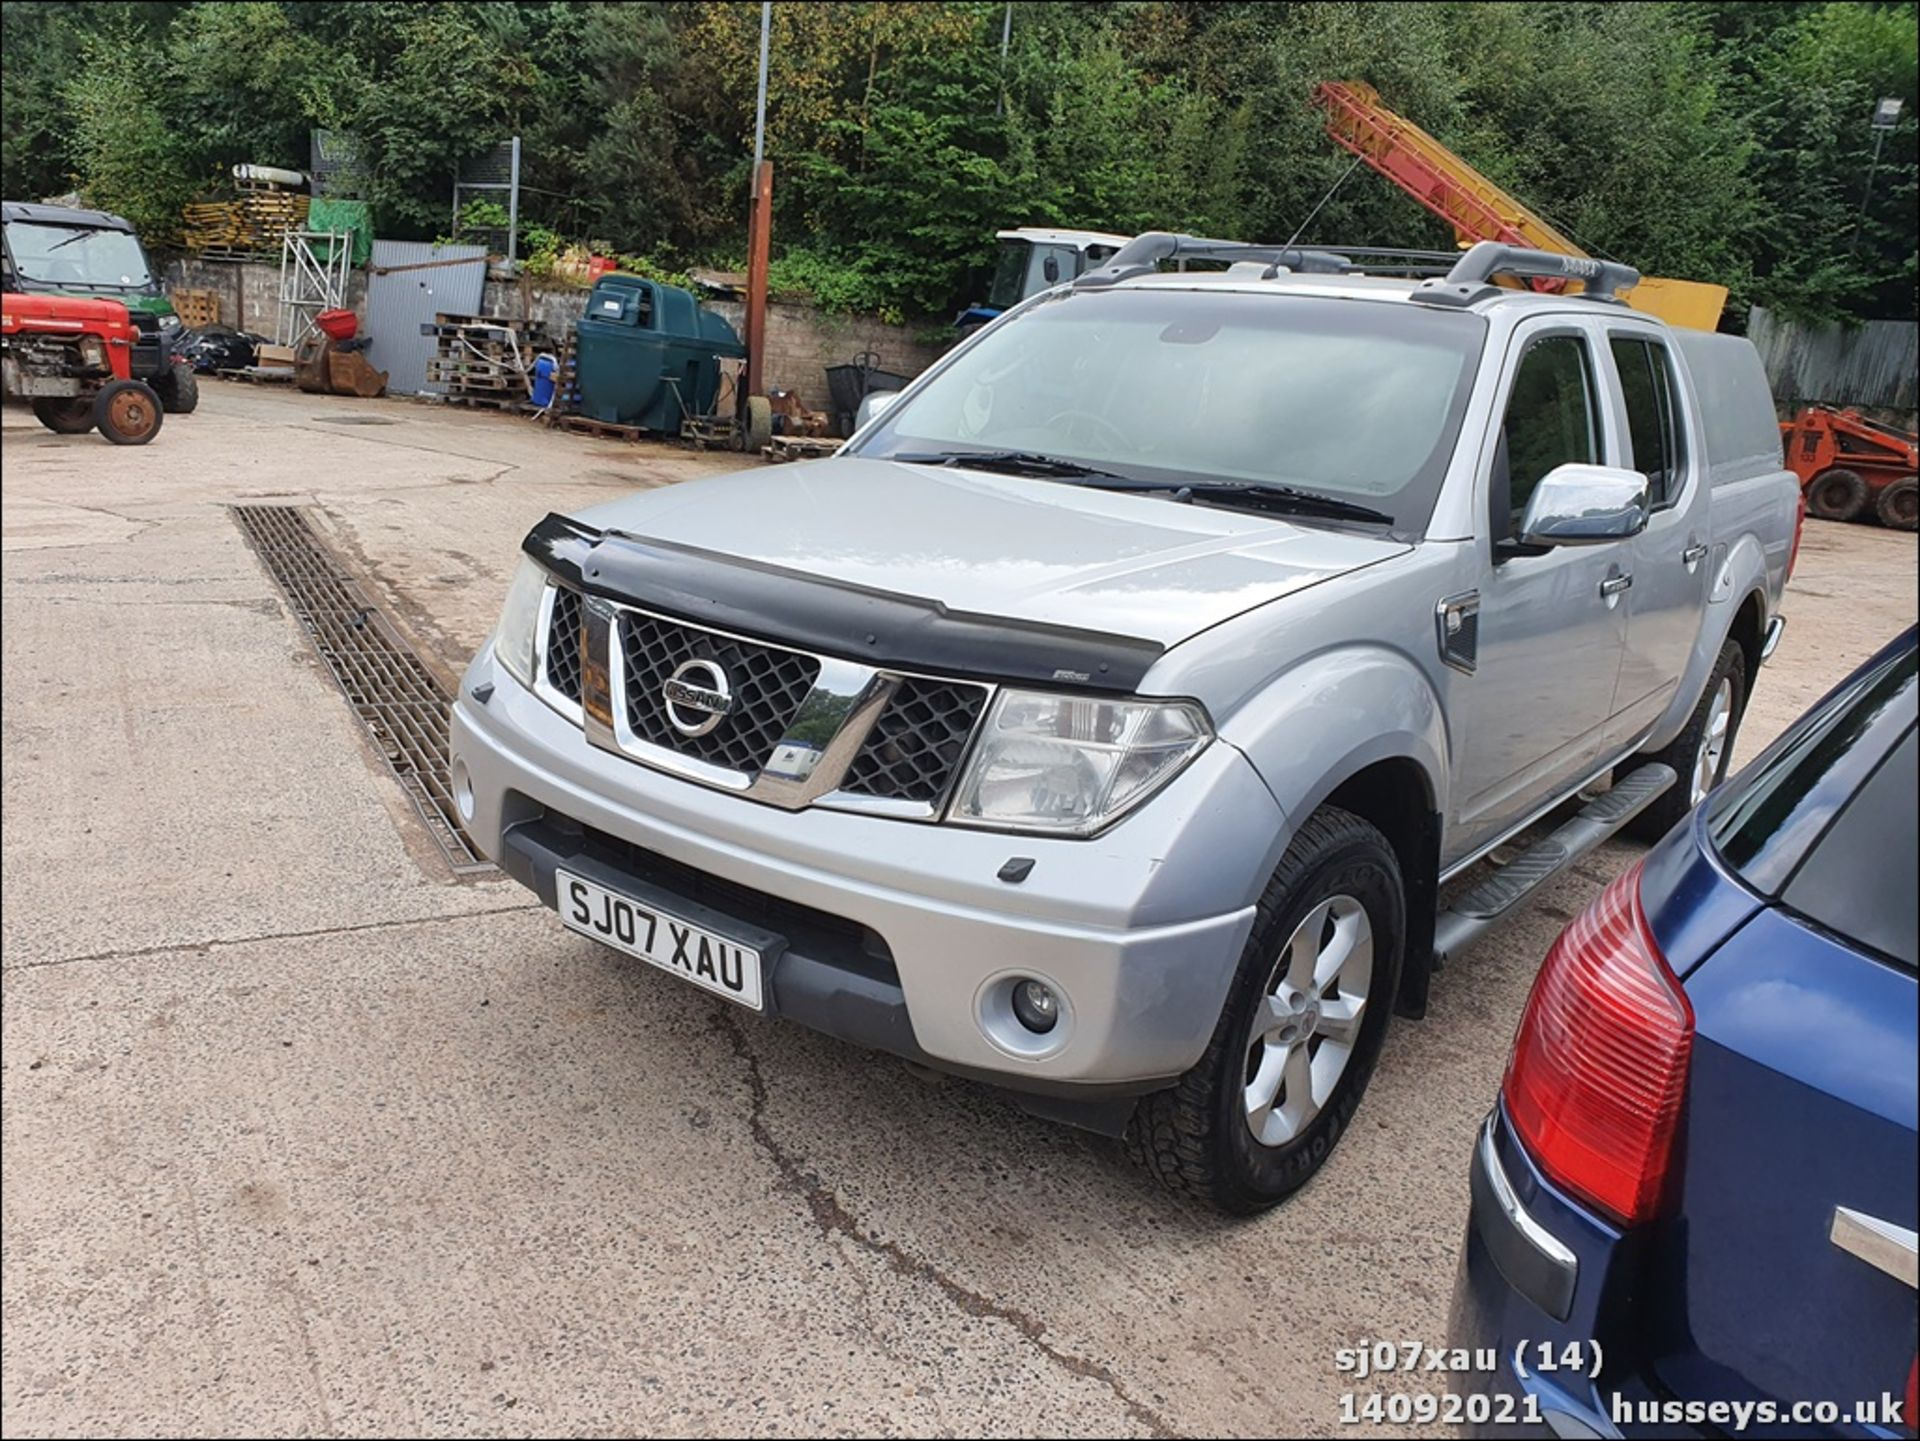 07/07 NISSAN NAVARA D/C OUTLAW DCI - 2488cc 4dr 4x4 (Silver, 166k) - Image 15 of 15